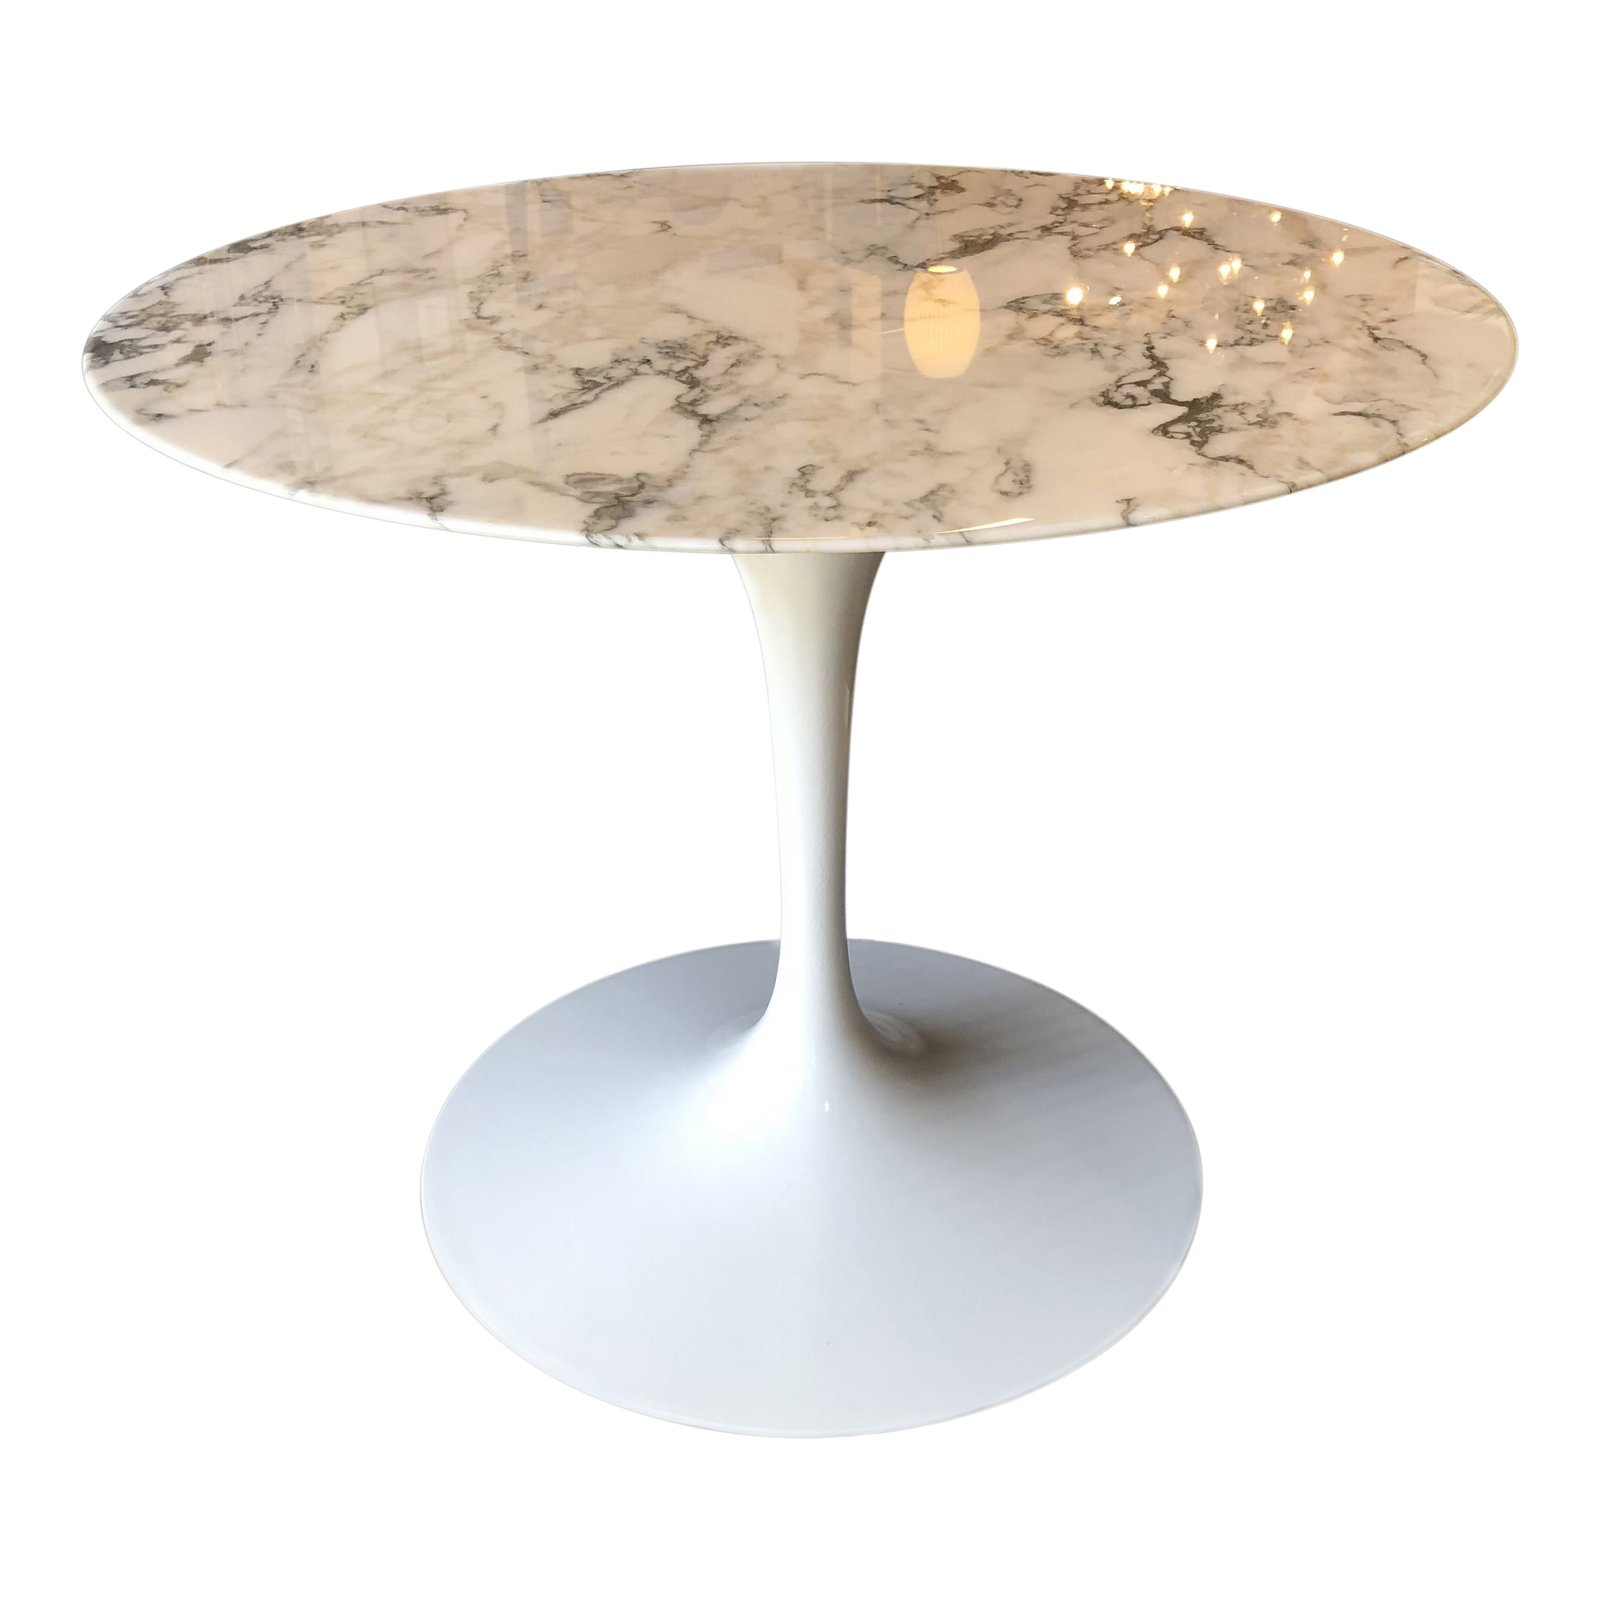 Marble Saarinen Tulip Table For Knoll Original Price - Original saarinen tulip table